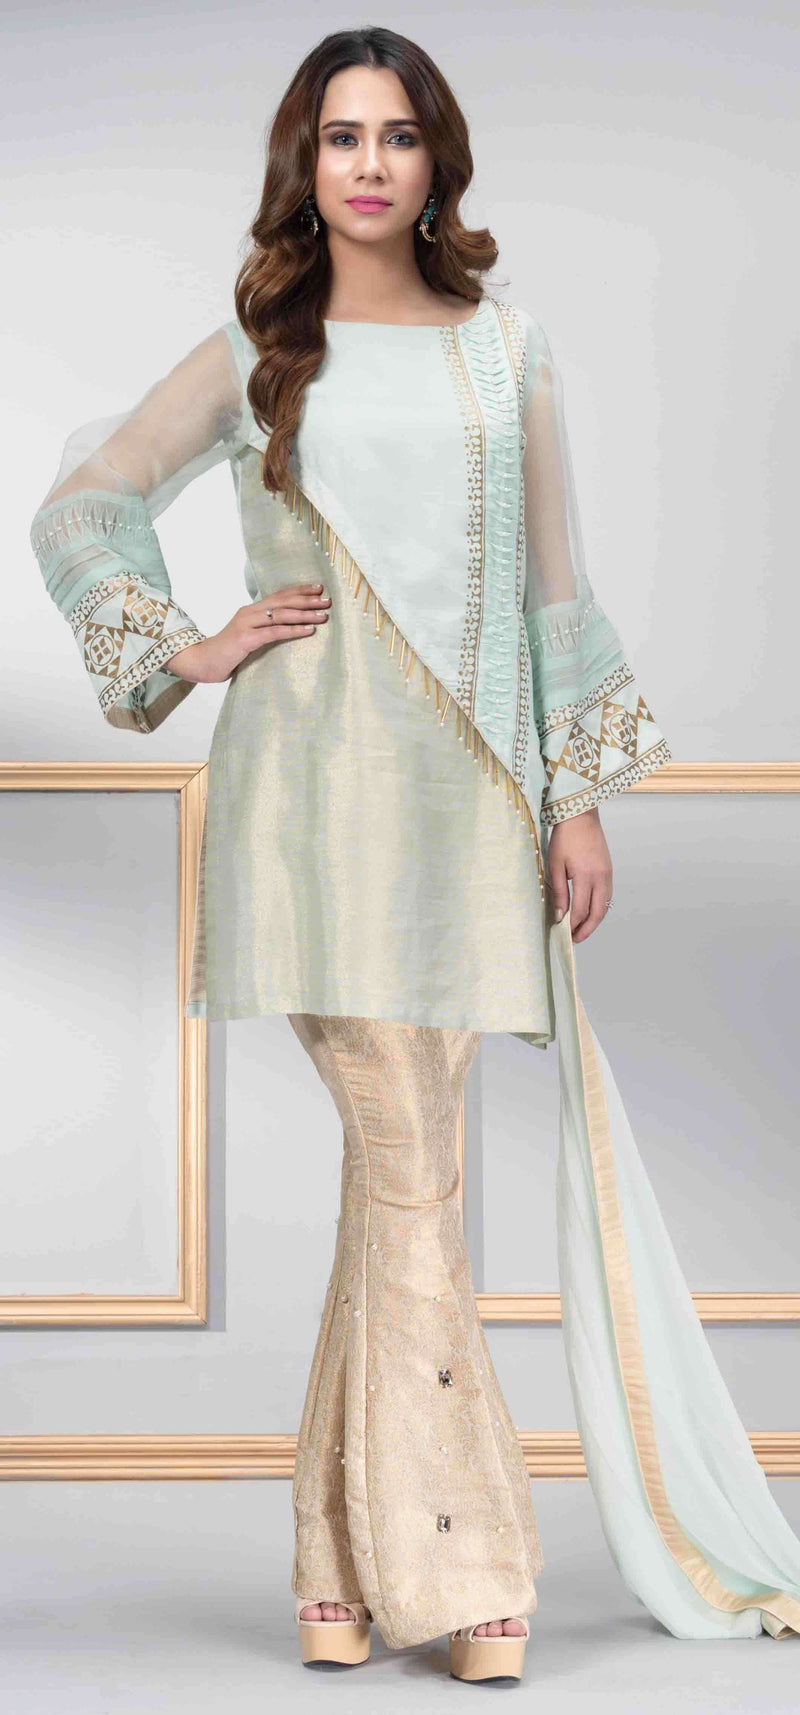 Luxury Pret, Pakistani Fashion Designer DOLPHIN MINT - Phatyma Khan